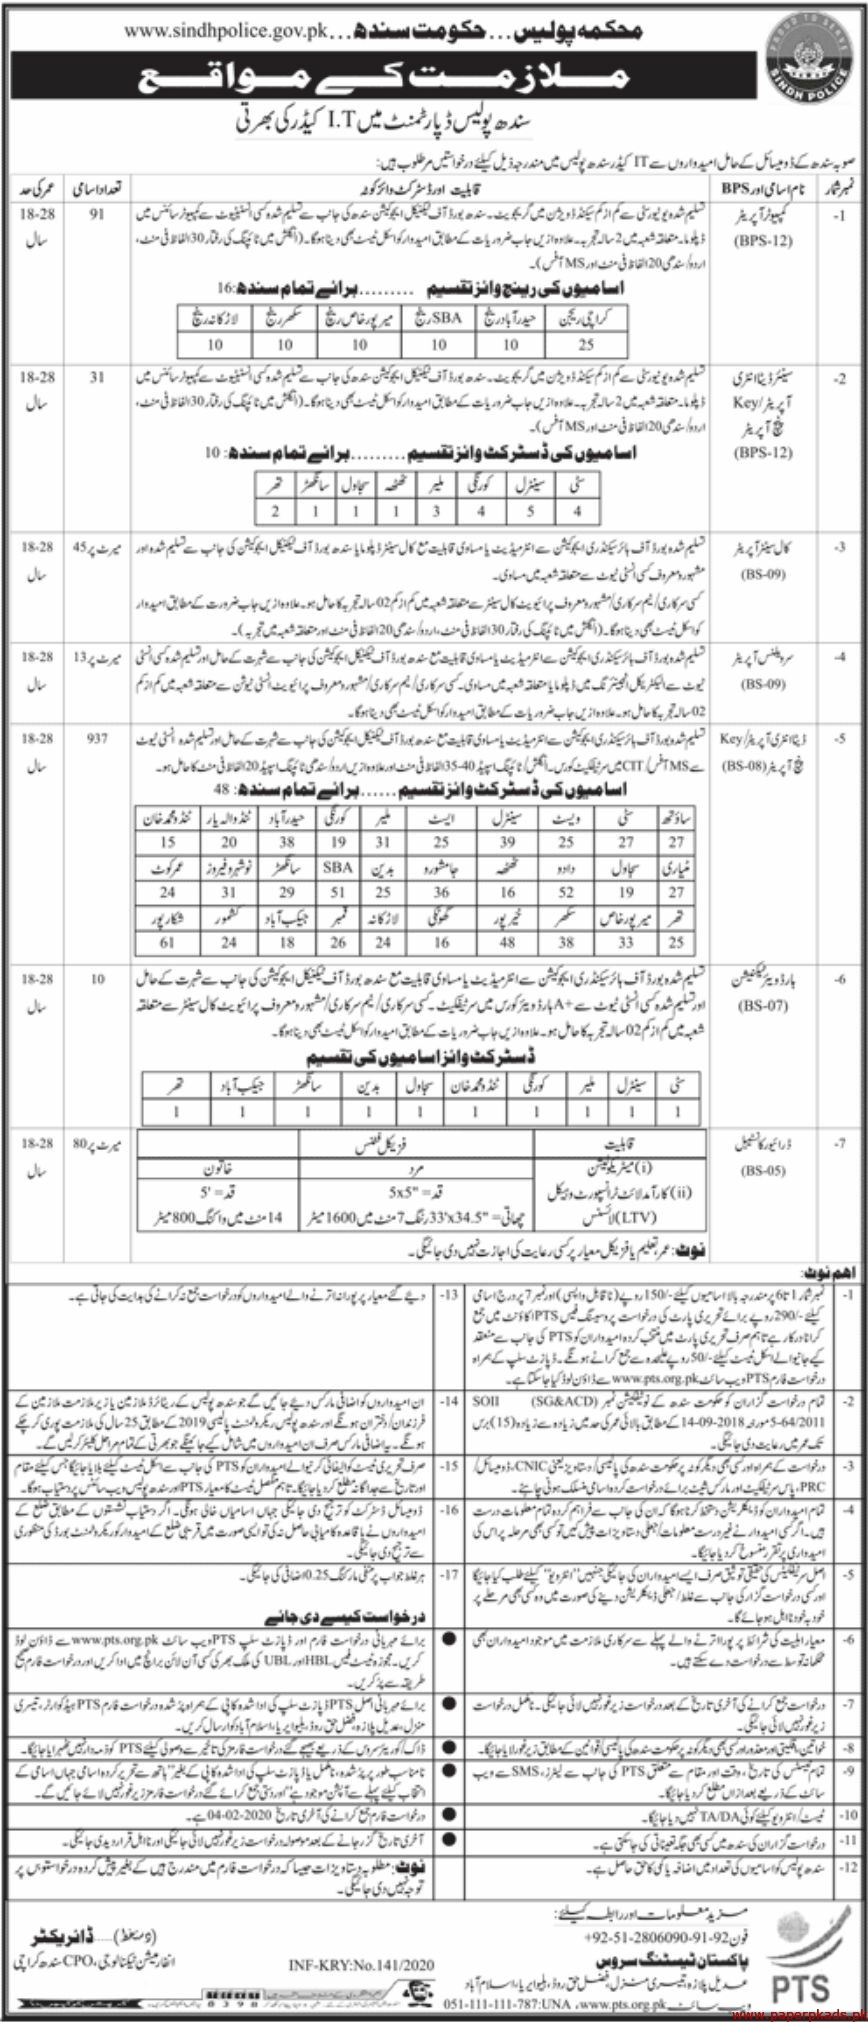 Sindh Police Jobs 2020 for 1207+ Data Entry Operators, Computer Operators, Call Centre Operators, Surveillance Operators & Others NTS Application Form Download Latest